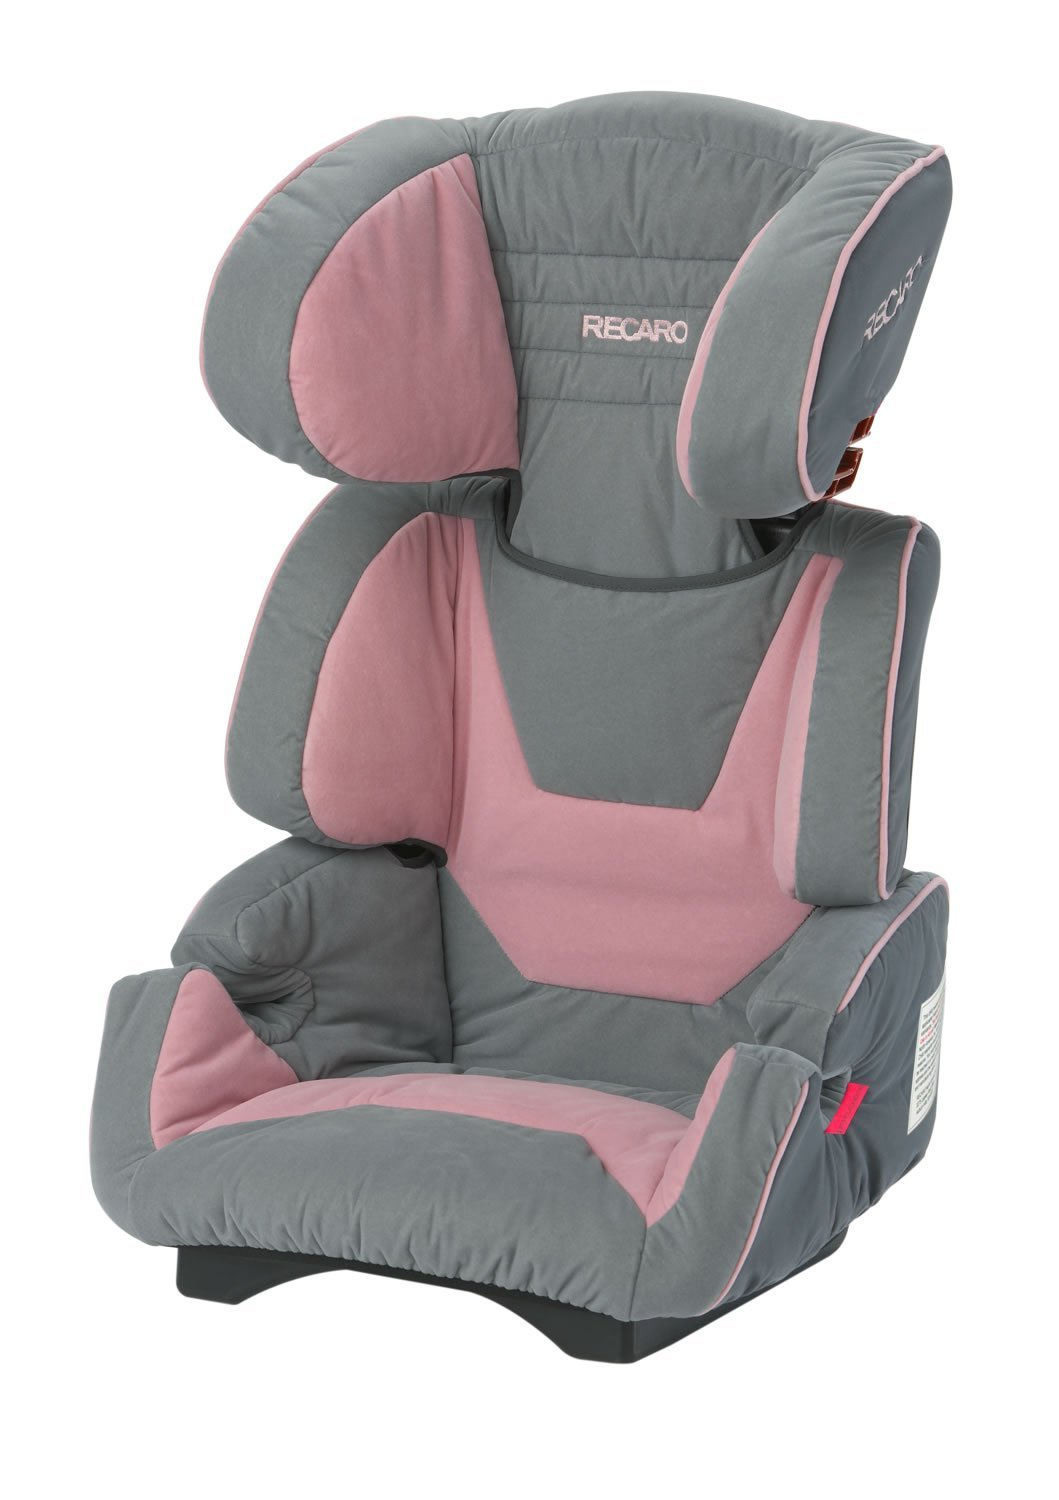 Recaro Vivo Child Booster Car Seat - Blush (Discontinued by Manufacturer)